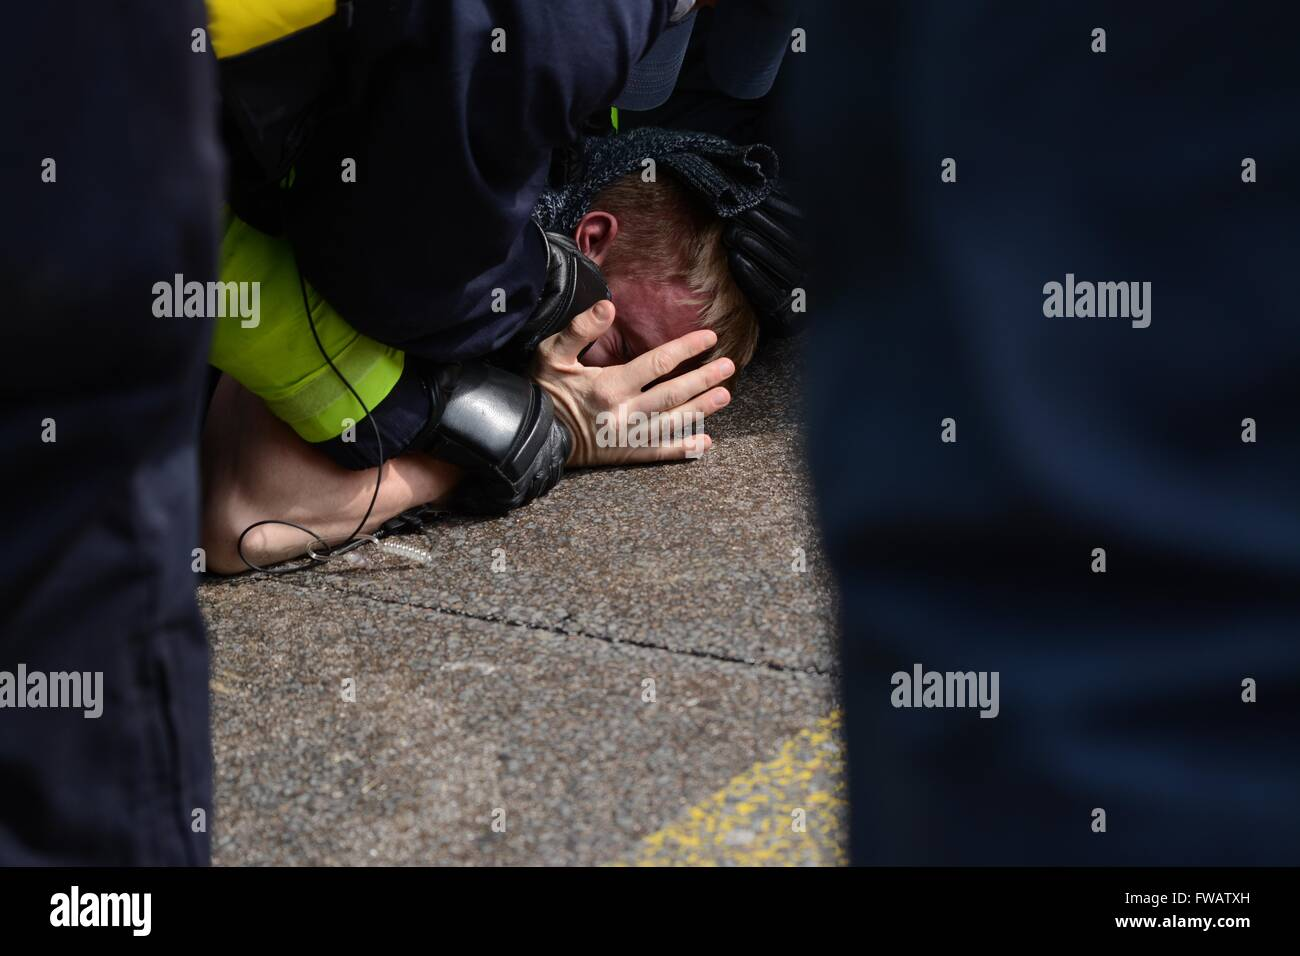 Dover, UK. 2nd April 2016. Clashes As Pro and Anti-refugee groups clash in Dover.  Protester lays on the ground - Stock Image